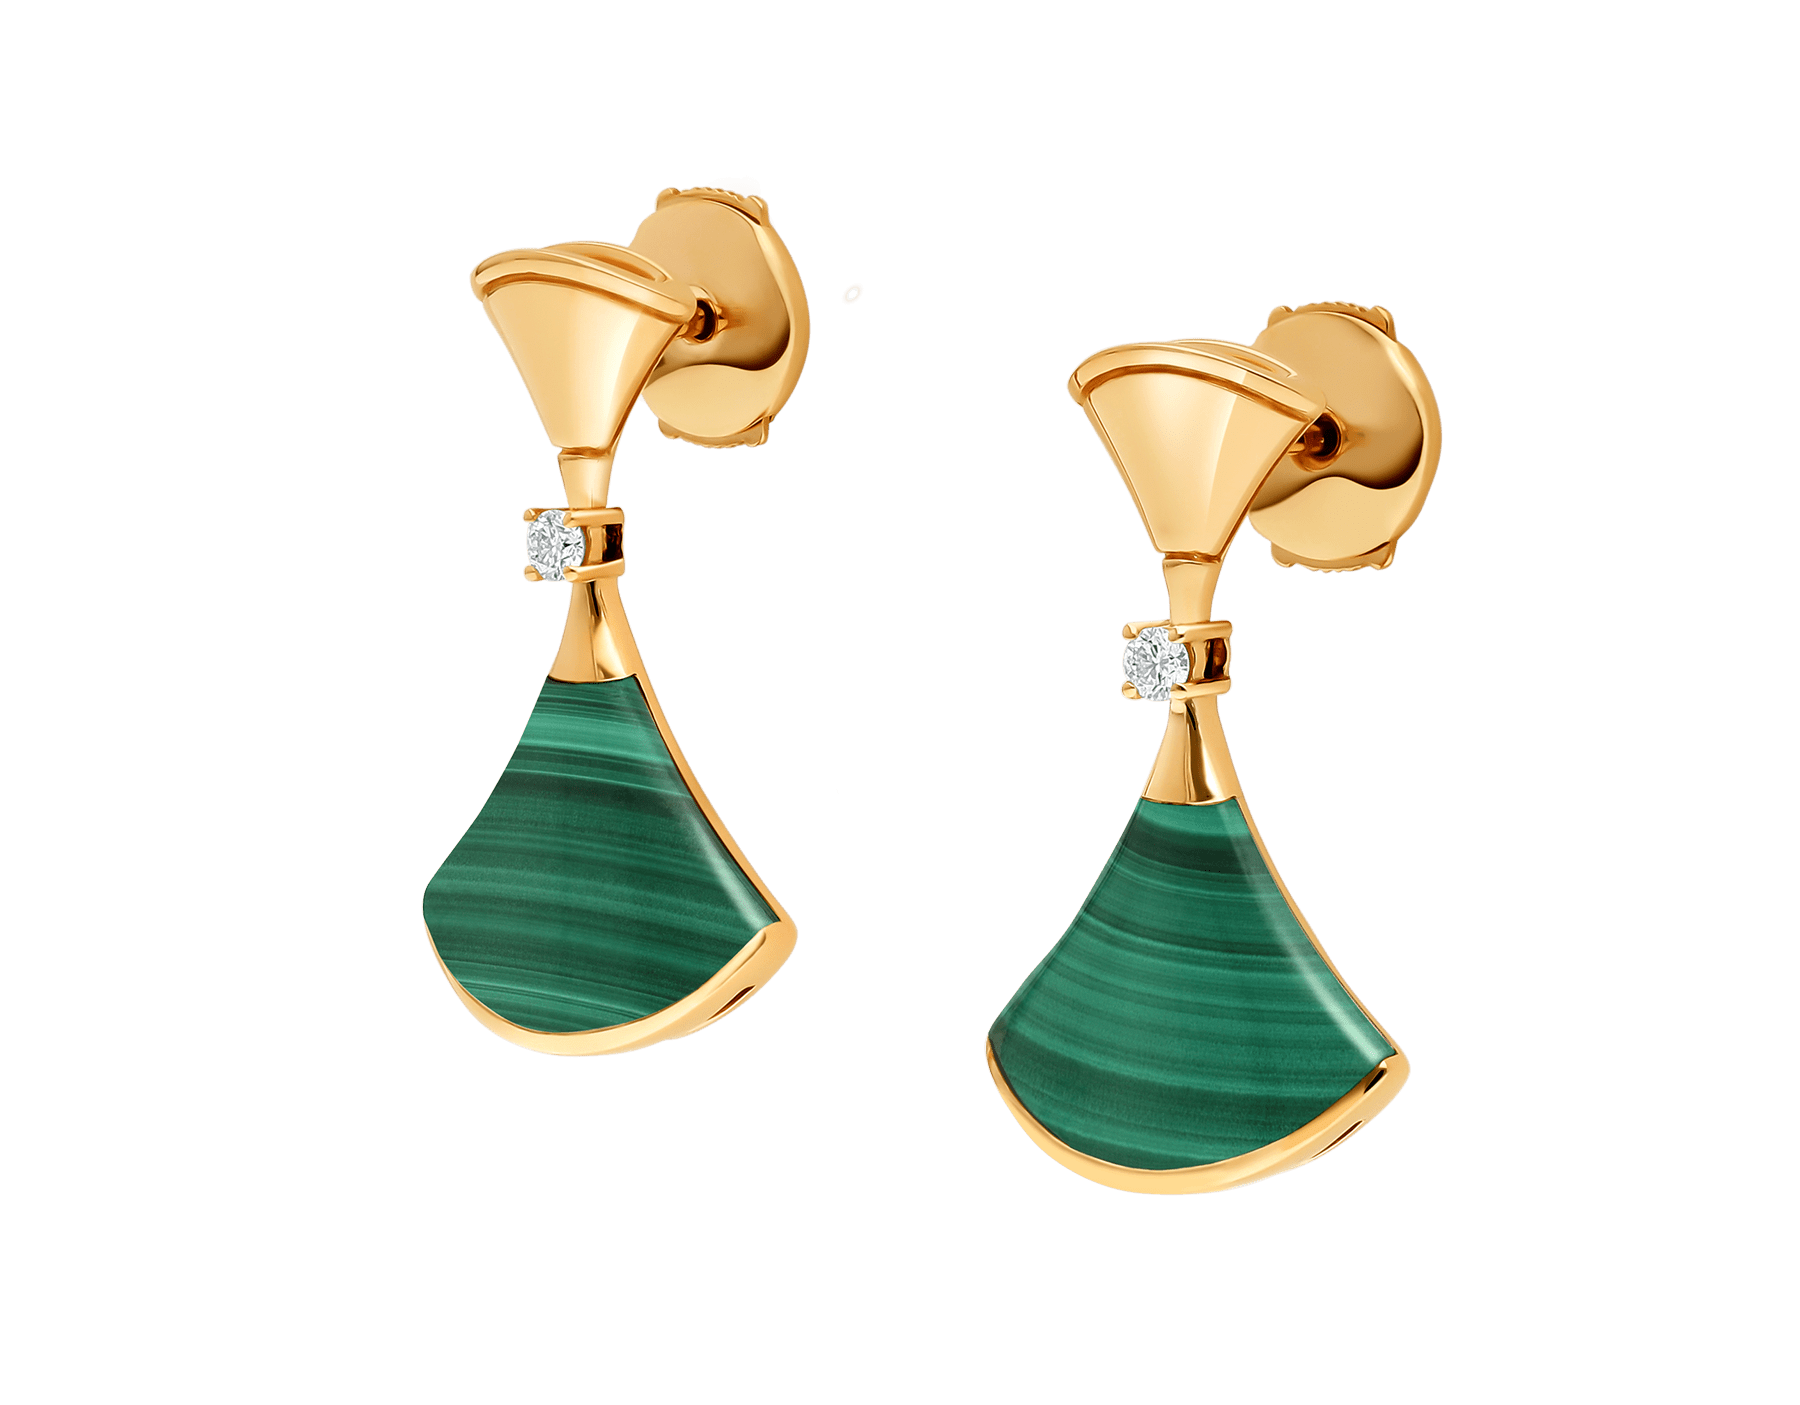 DIVAS' DREAM 18 kt rose gold earrings set with malachite elements and round brilliant-cut diamonds (0.07) 358128 image 2